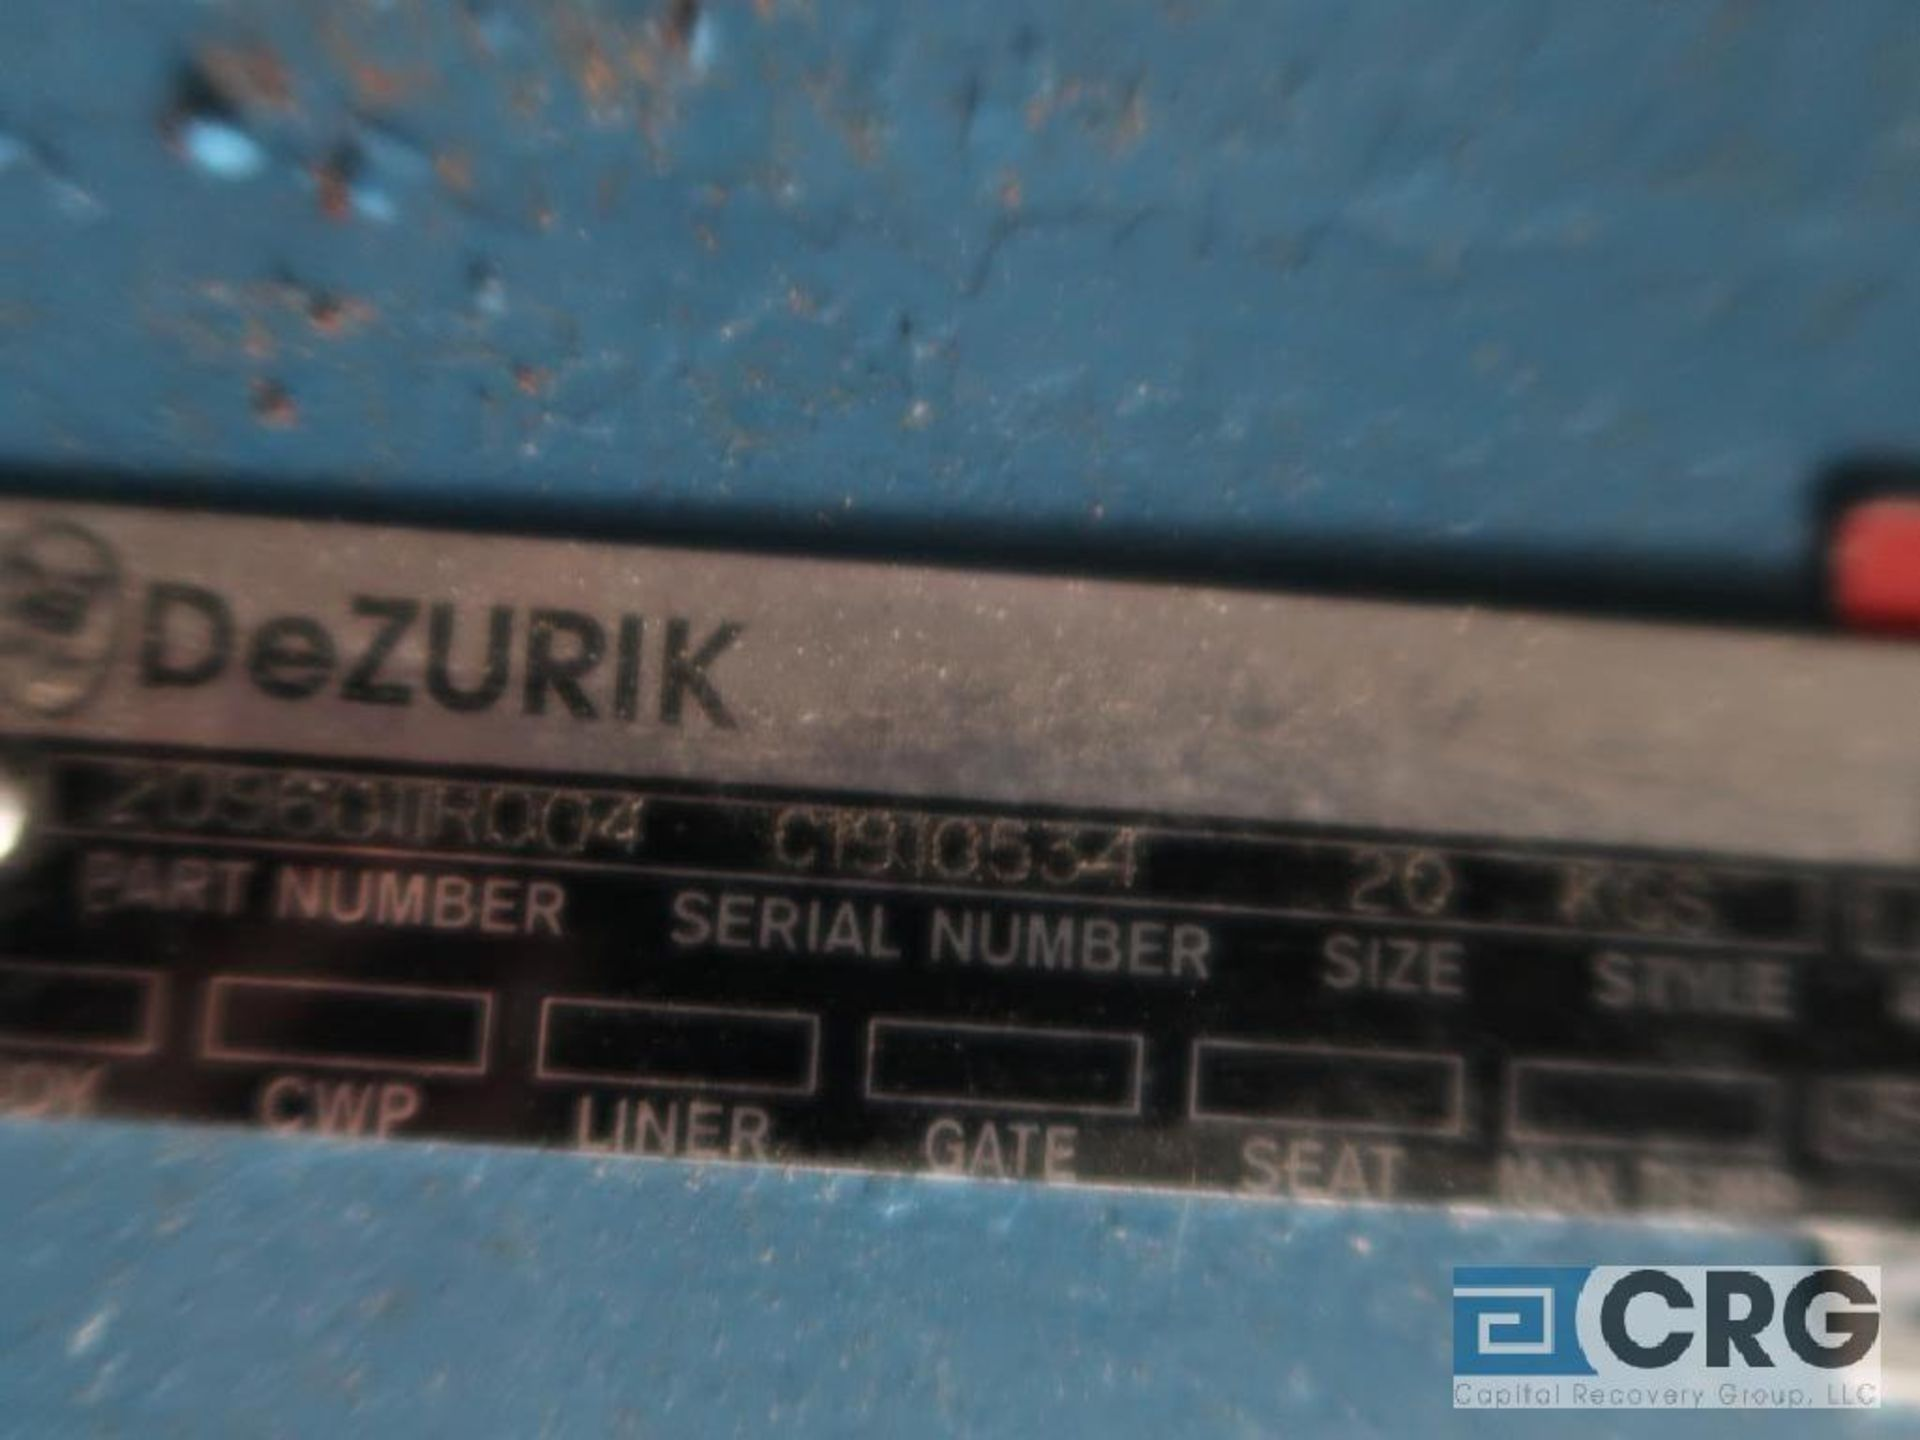 Dezurik 20 in. stainless pneumatic gate valve (Off Site Warehouse) - Image 3 of 3